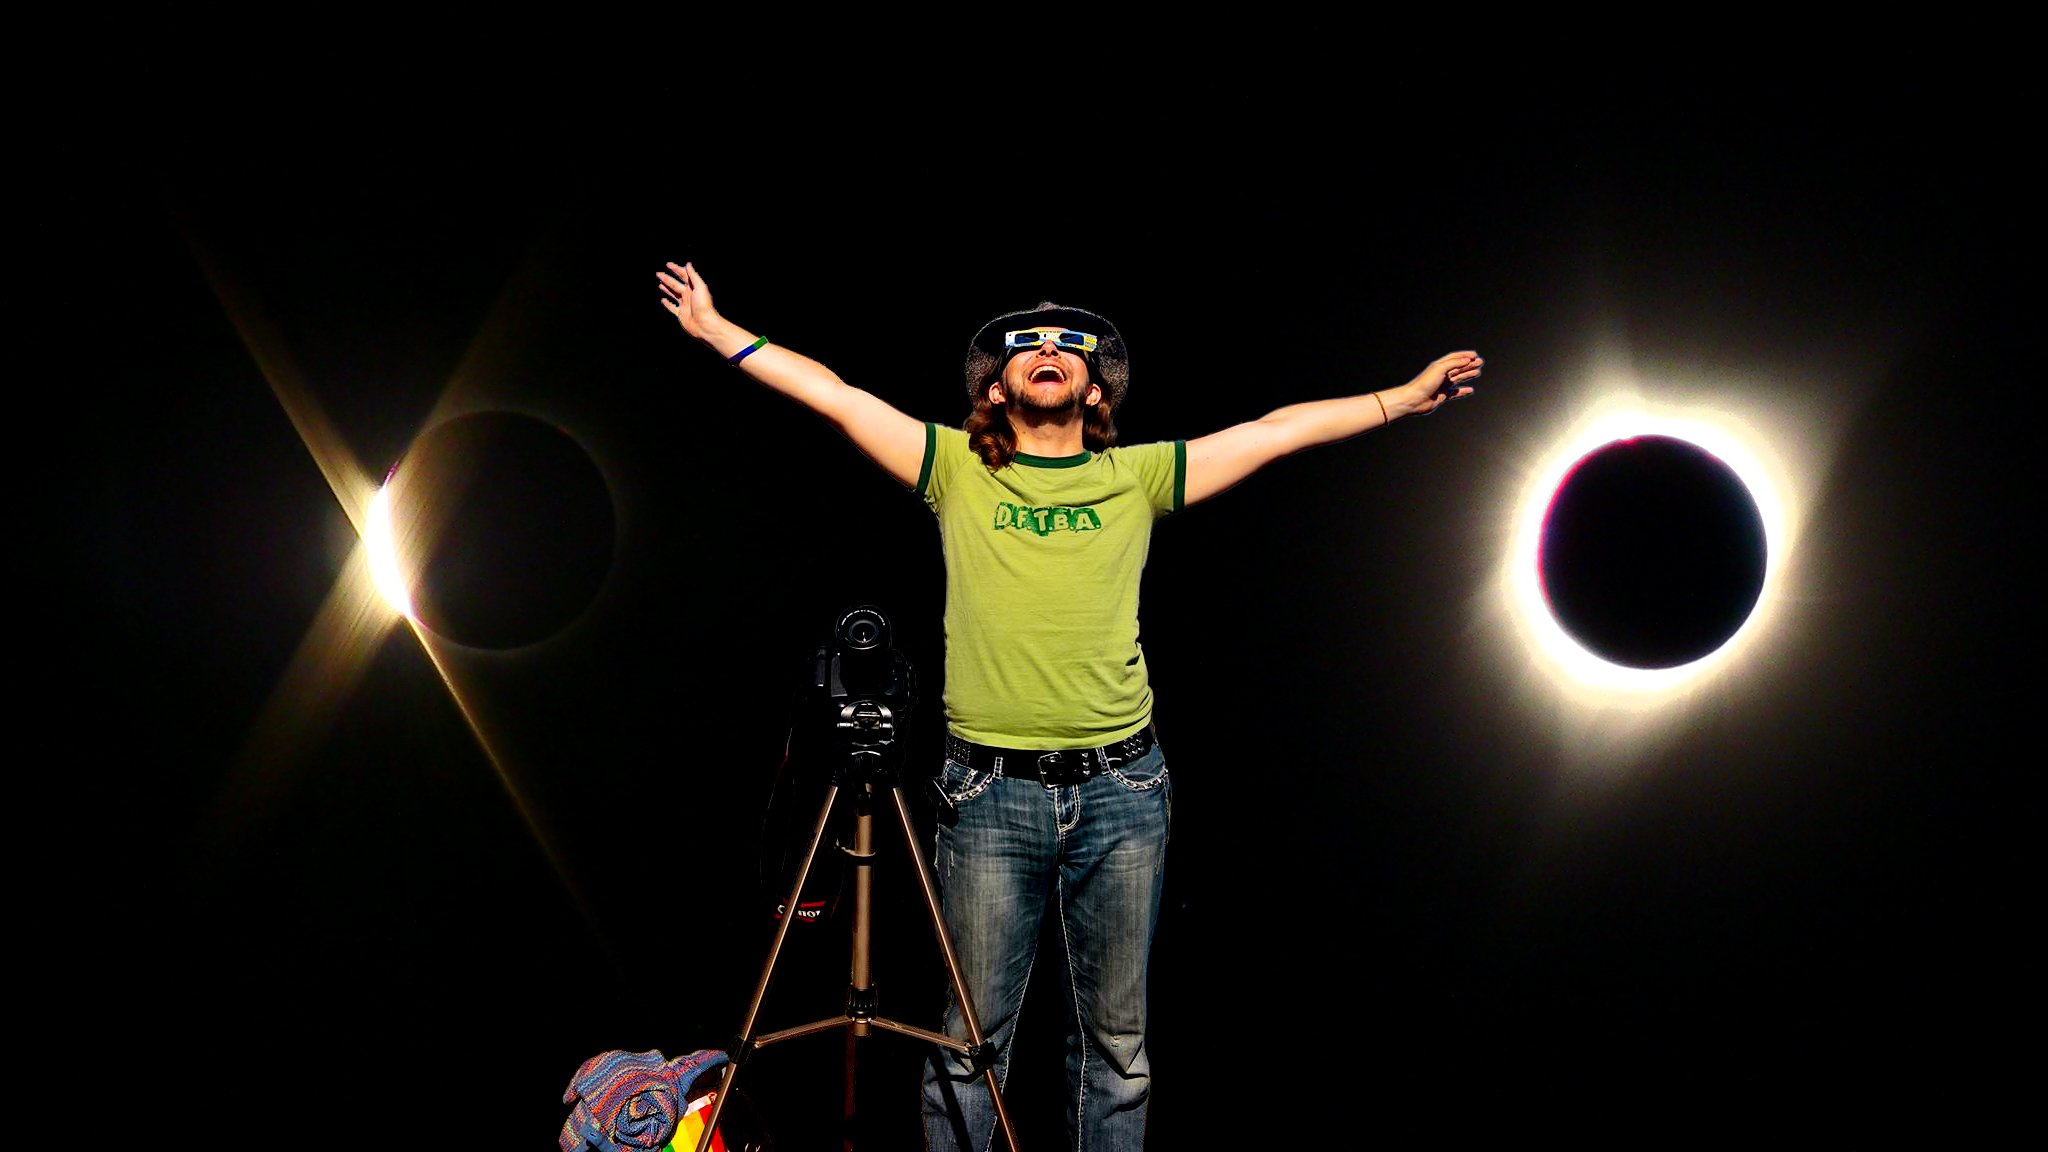 2017-08-21 total solar eclipse website thumnail